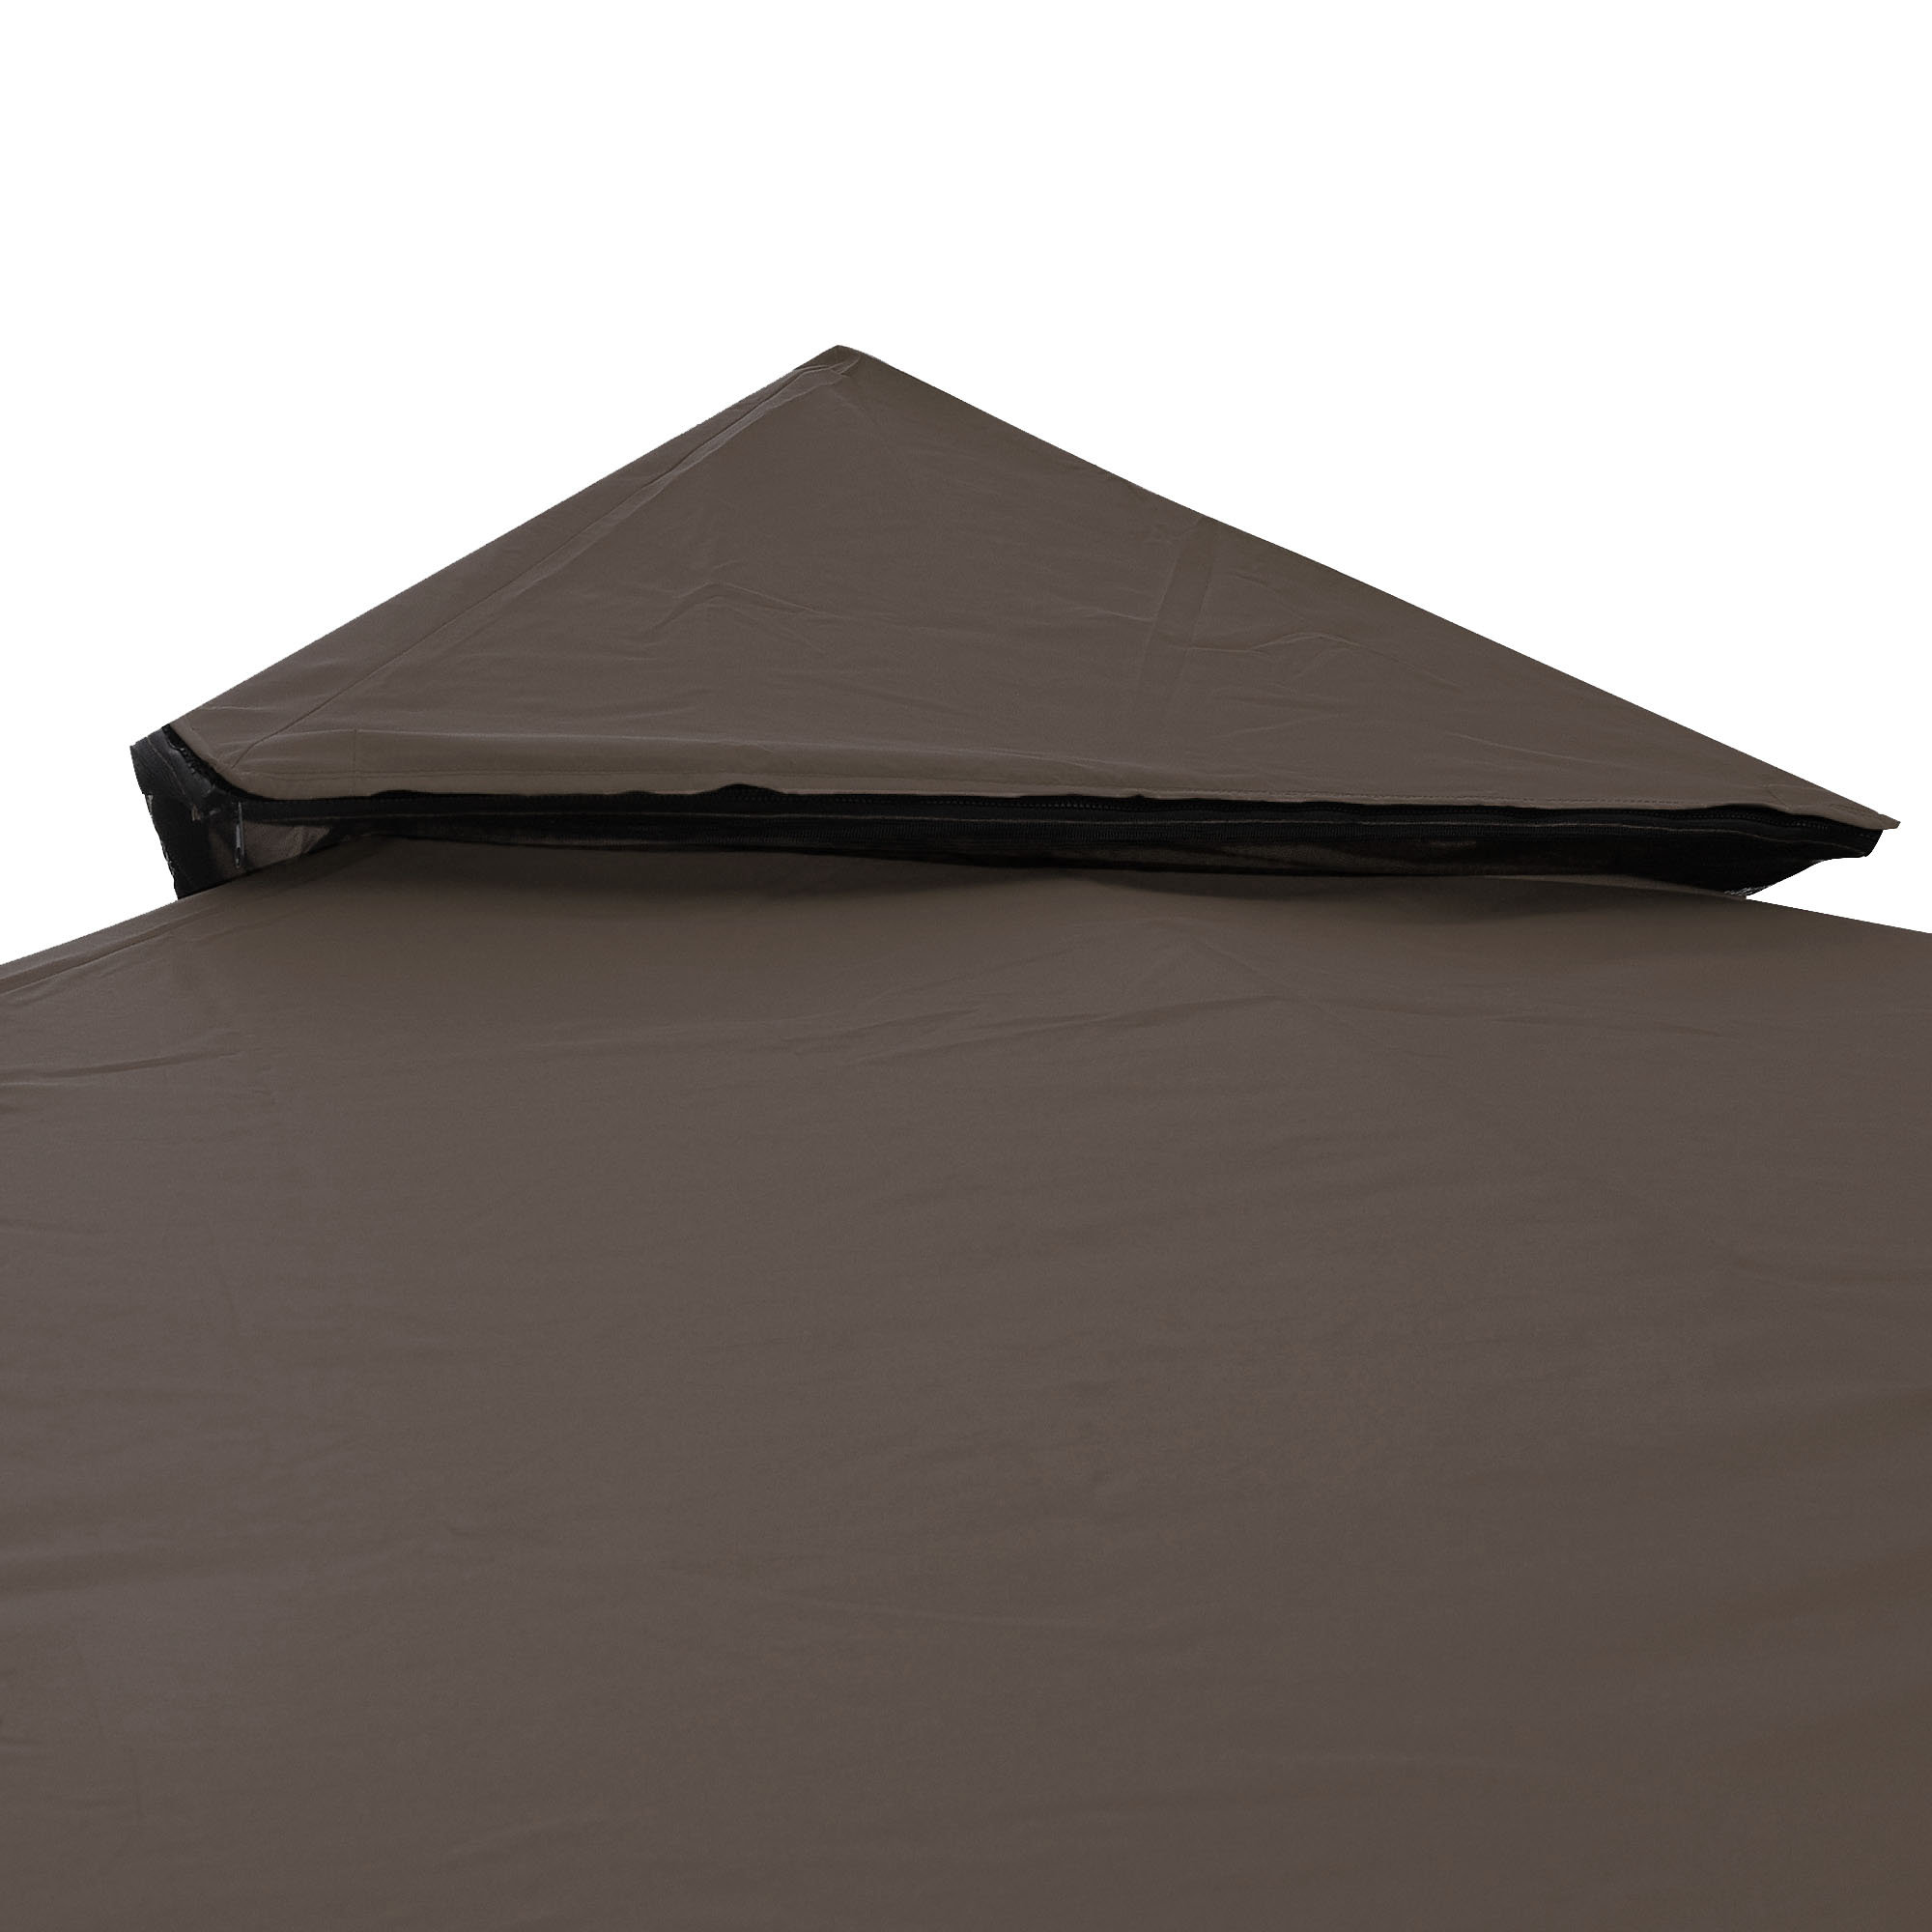 8x8-039-10x10-039-12x12-039-Gazebo-Top-Canopy-Replacement-UV30-Patio-Outdoor-Garden-Cover thumbnail 63